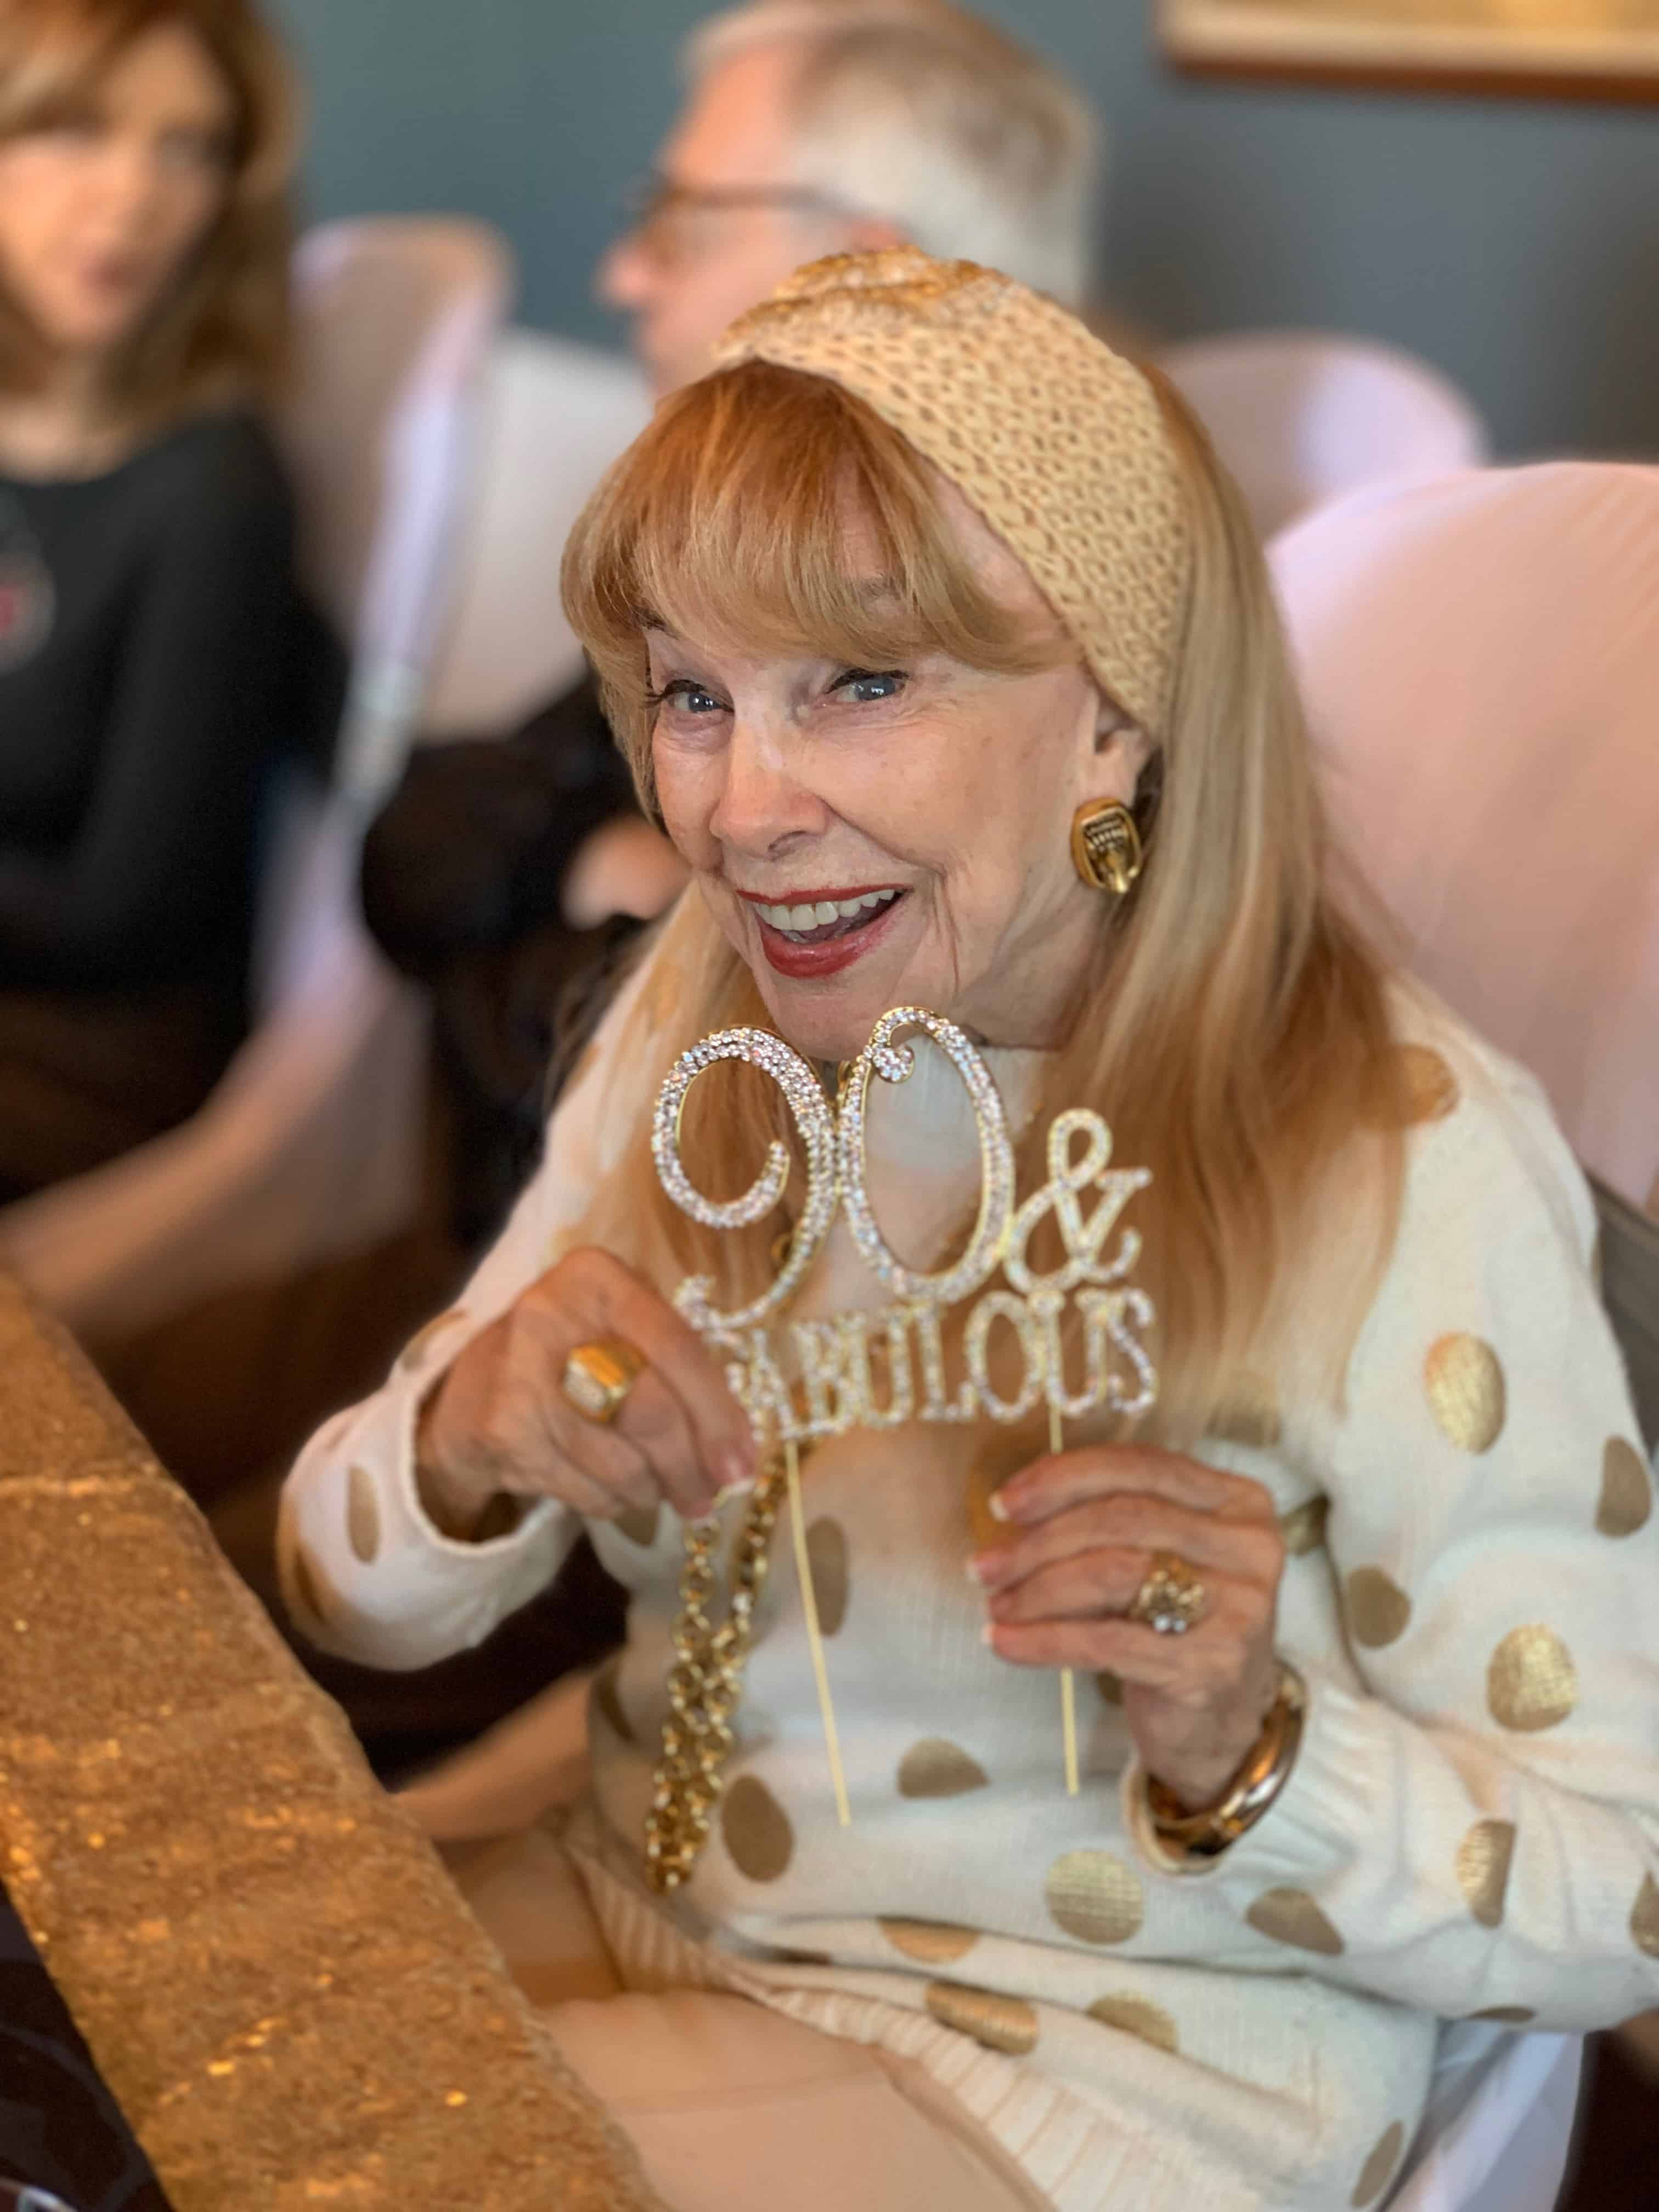 Terry Moore celebrating her 90th birthday